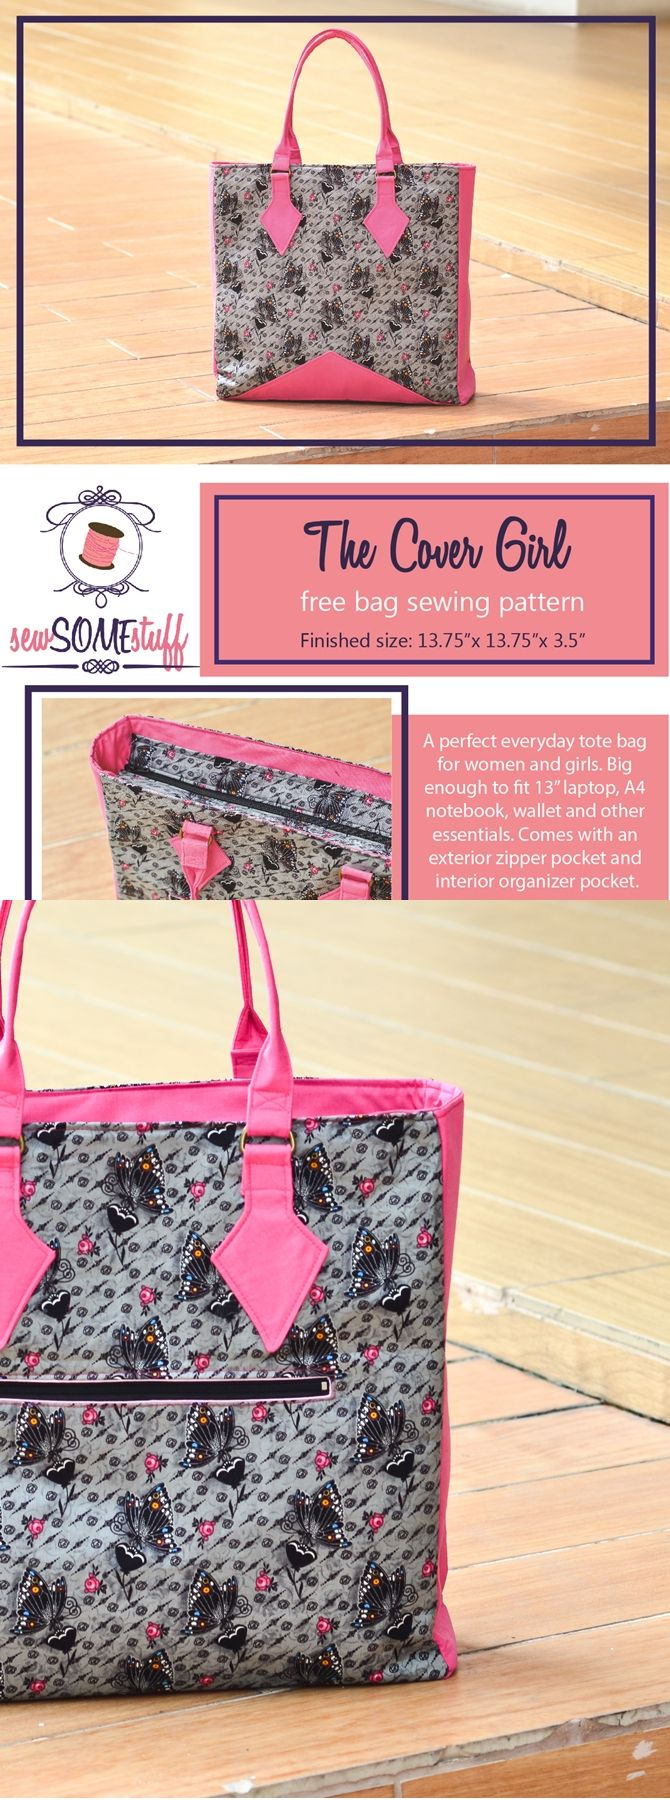 Best 25  Bags sewing ideas on Pinterest | Bag sewing patterns ...